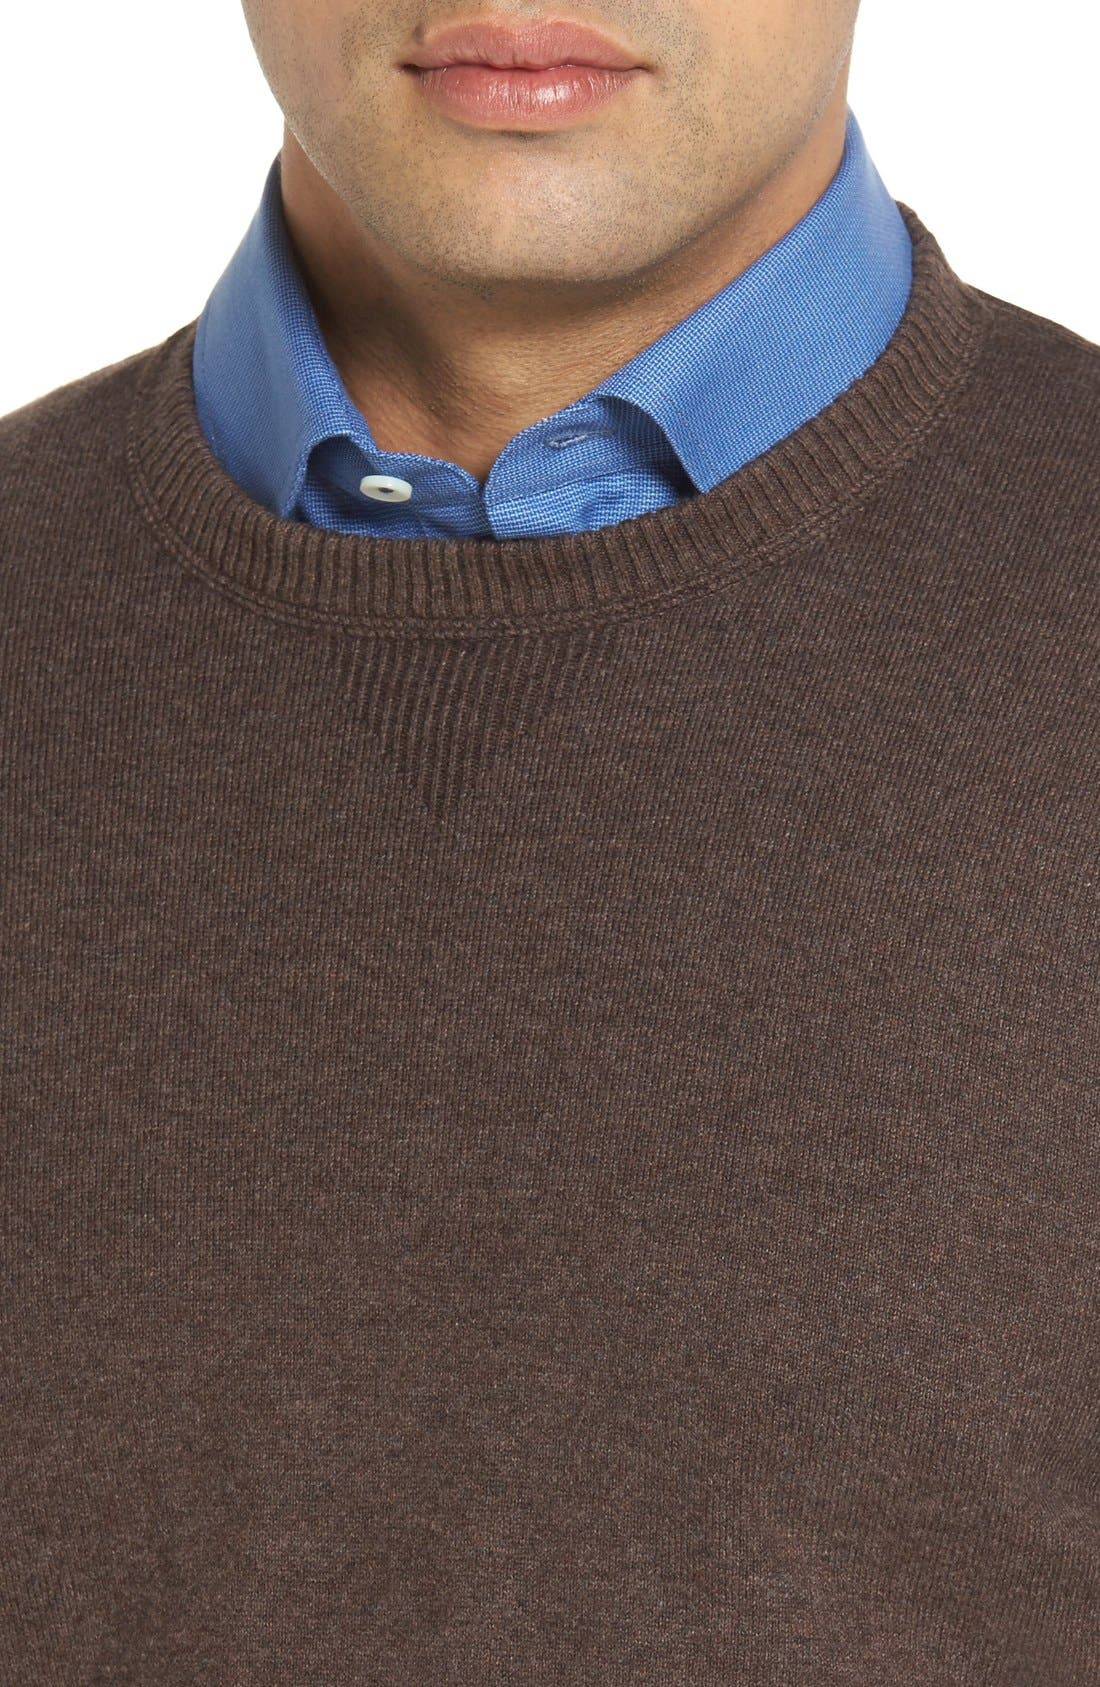 'Jersey Sport' Cotton Blend Crewneck Sweater,                             Alternate thumbnail 4, color,                             Coffee